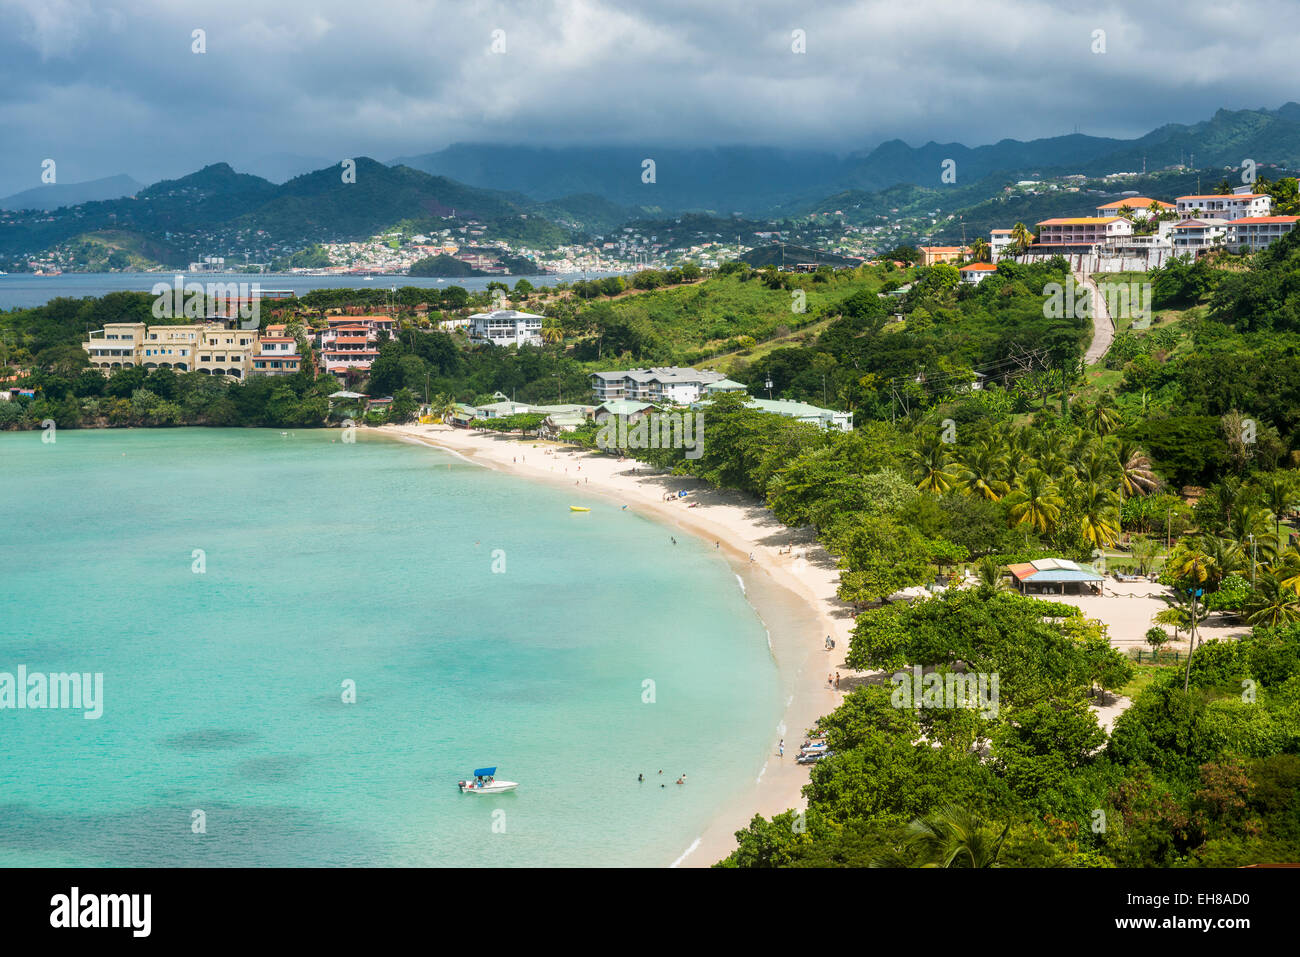 View over Mourne Rouge beach, Grenada, Windward Islands, West Indies, Caribbean, Central America - Stock Image